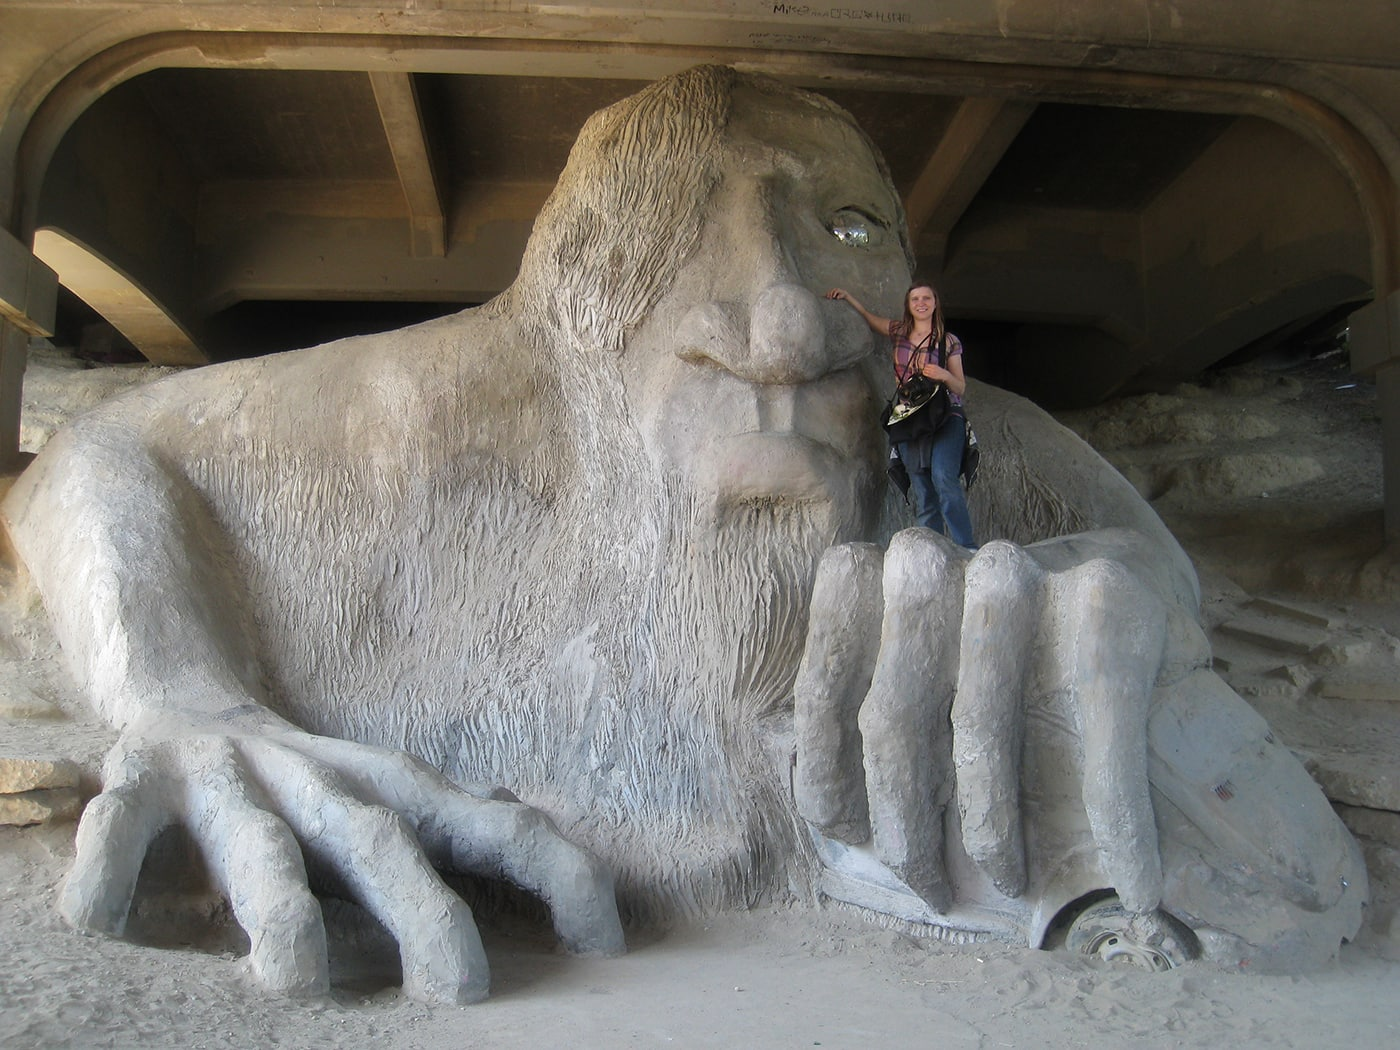 Val and the Fremont Troll, a roadside attraction in Seattle, Washington.